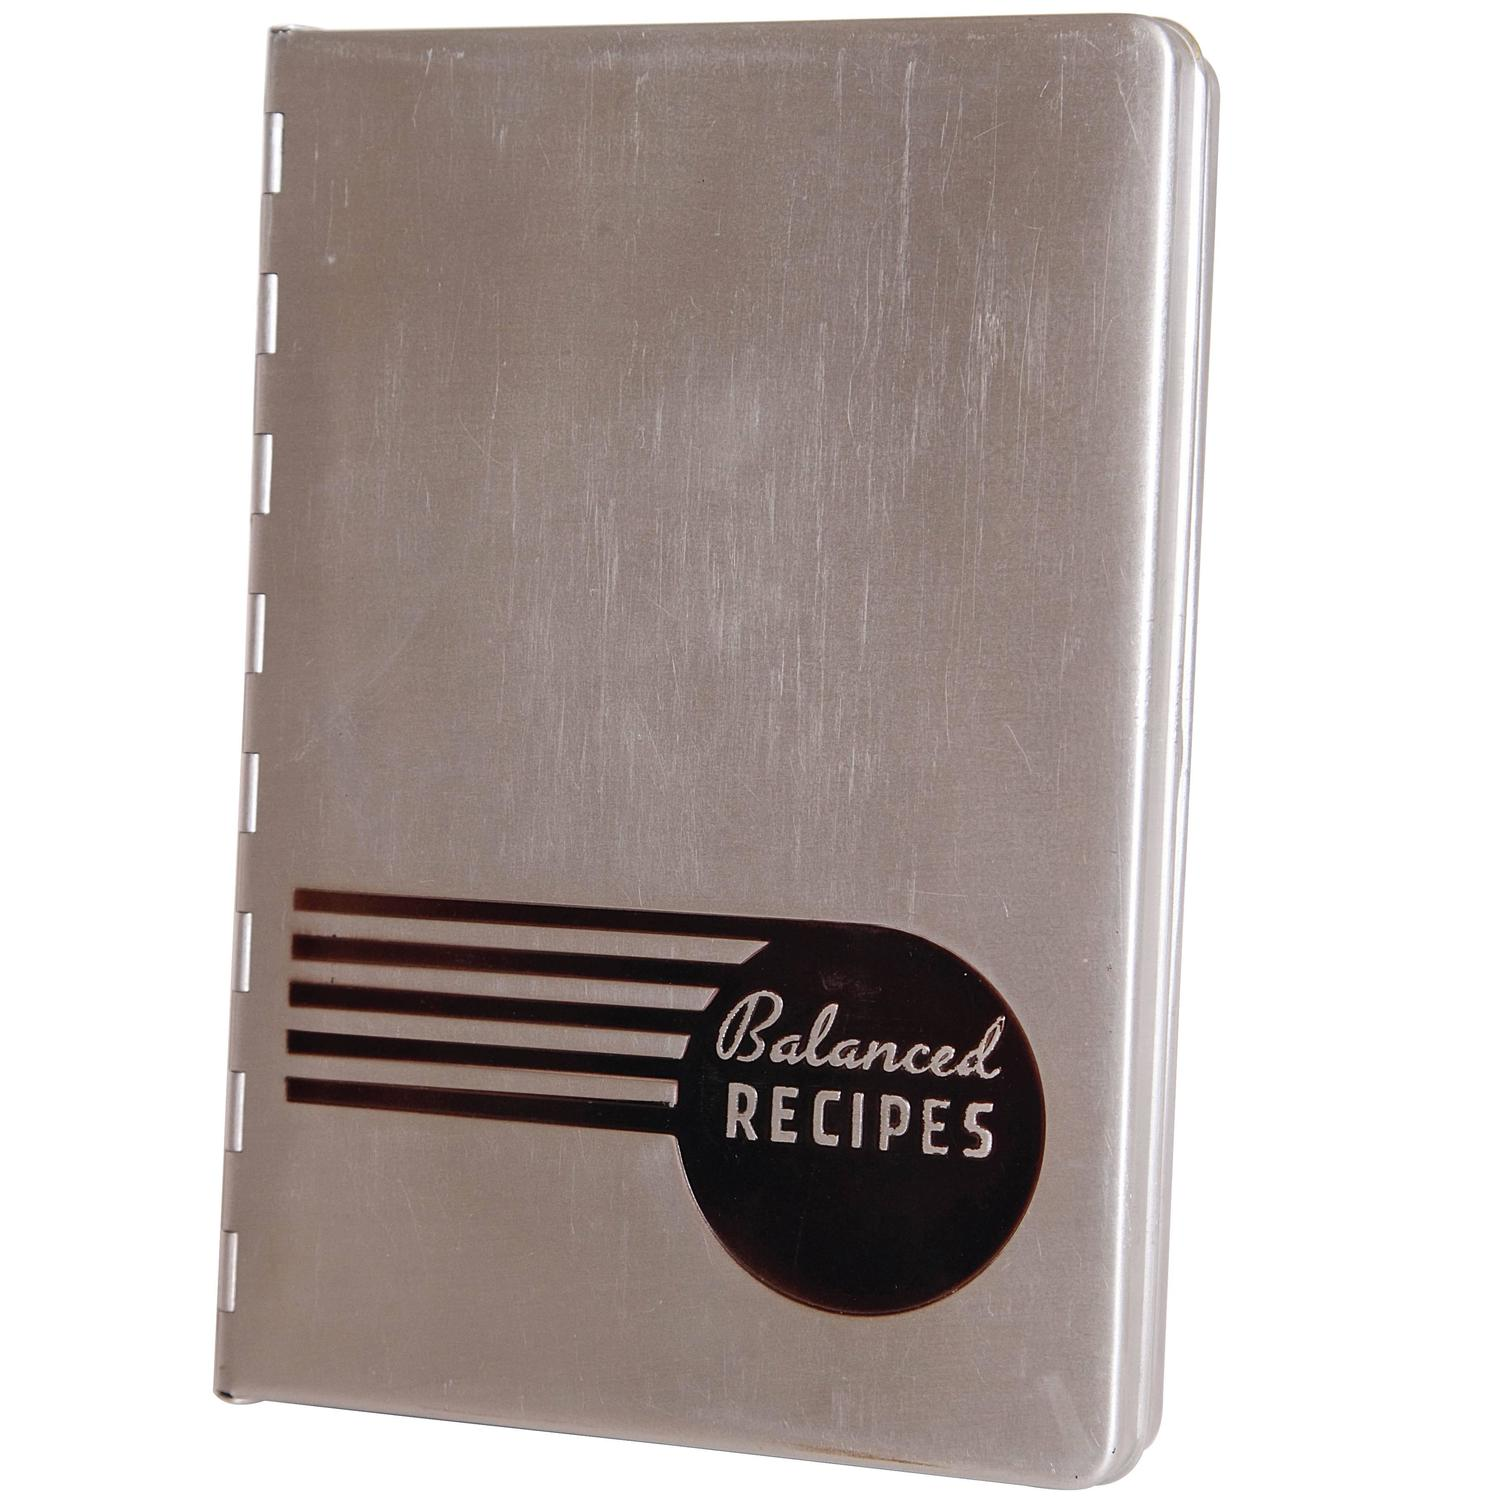 pillsbury balanced recipes streamline aluminum art deco book 1933